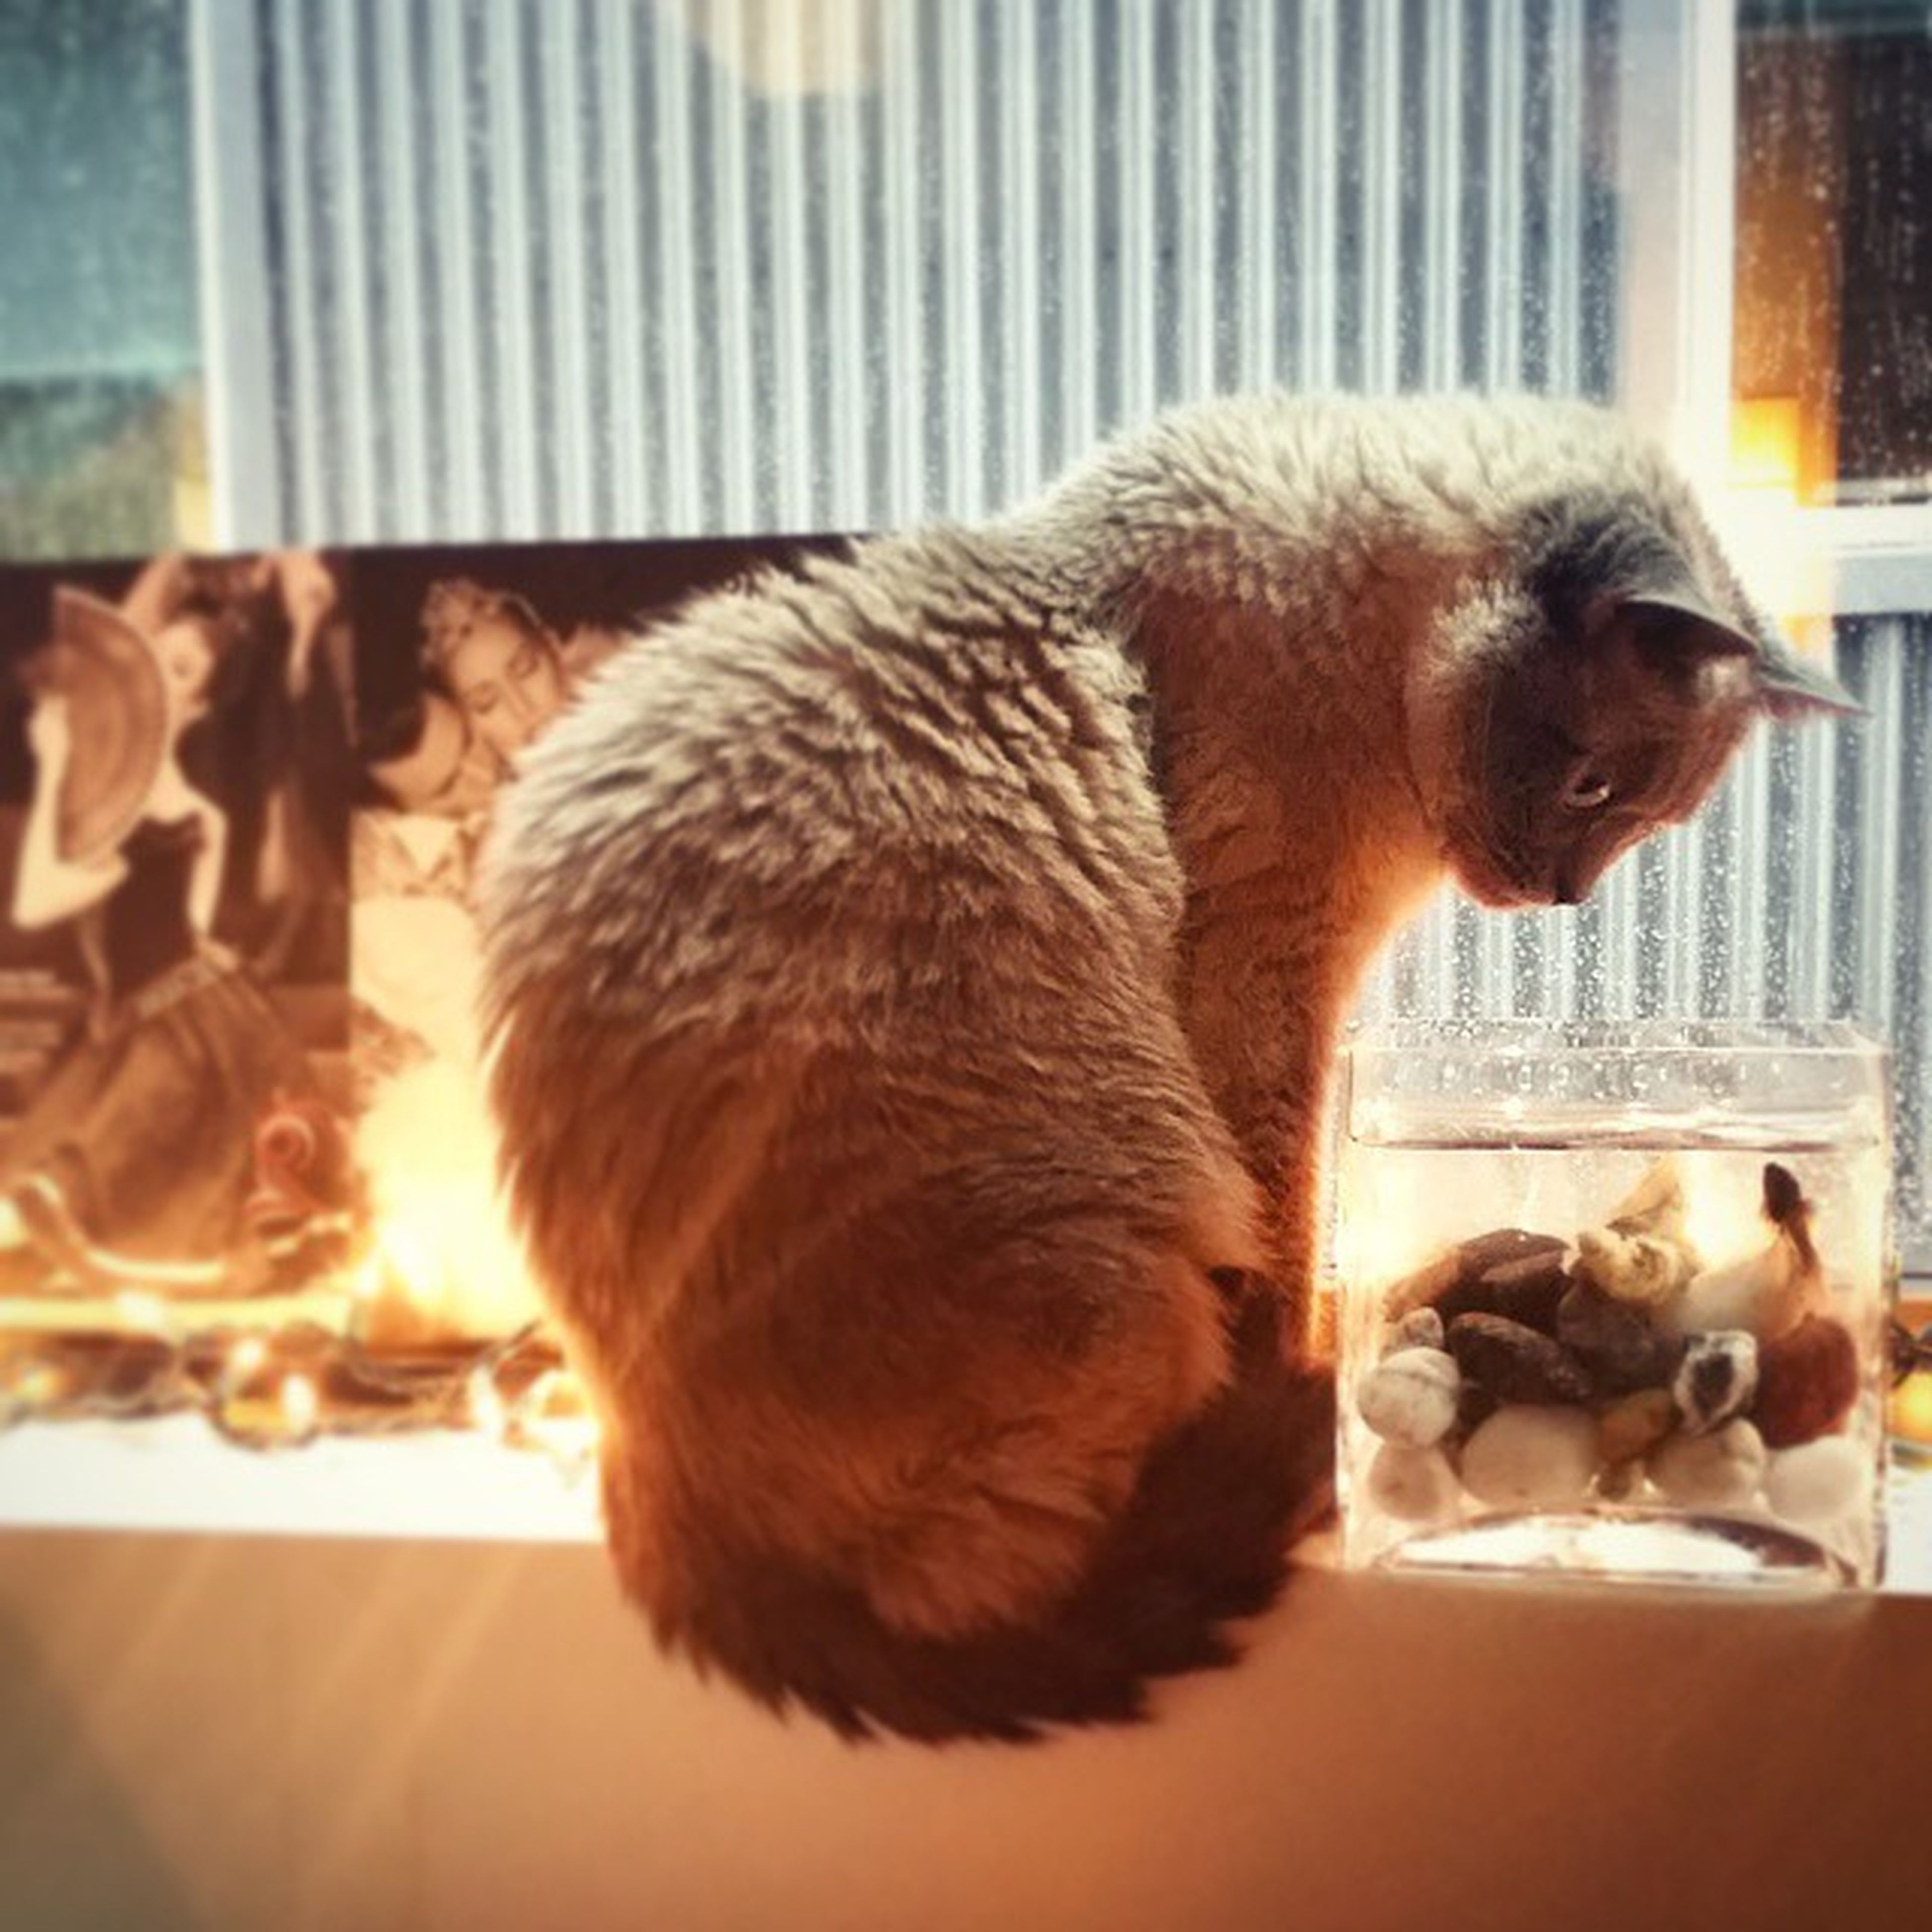 animal themes, indoors, domestic animals, mammal, pets, one animal, glass - material, window, sitting, home interior, relaxation, transparent, domestic cat, dog, close-up, focus on foreground, brown, table, day, reflection